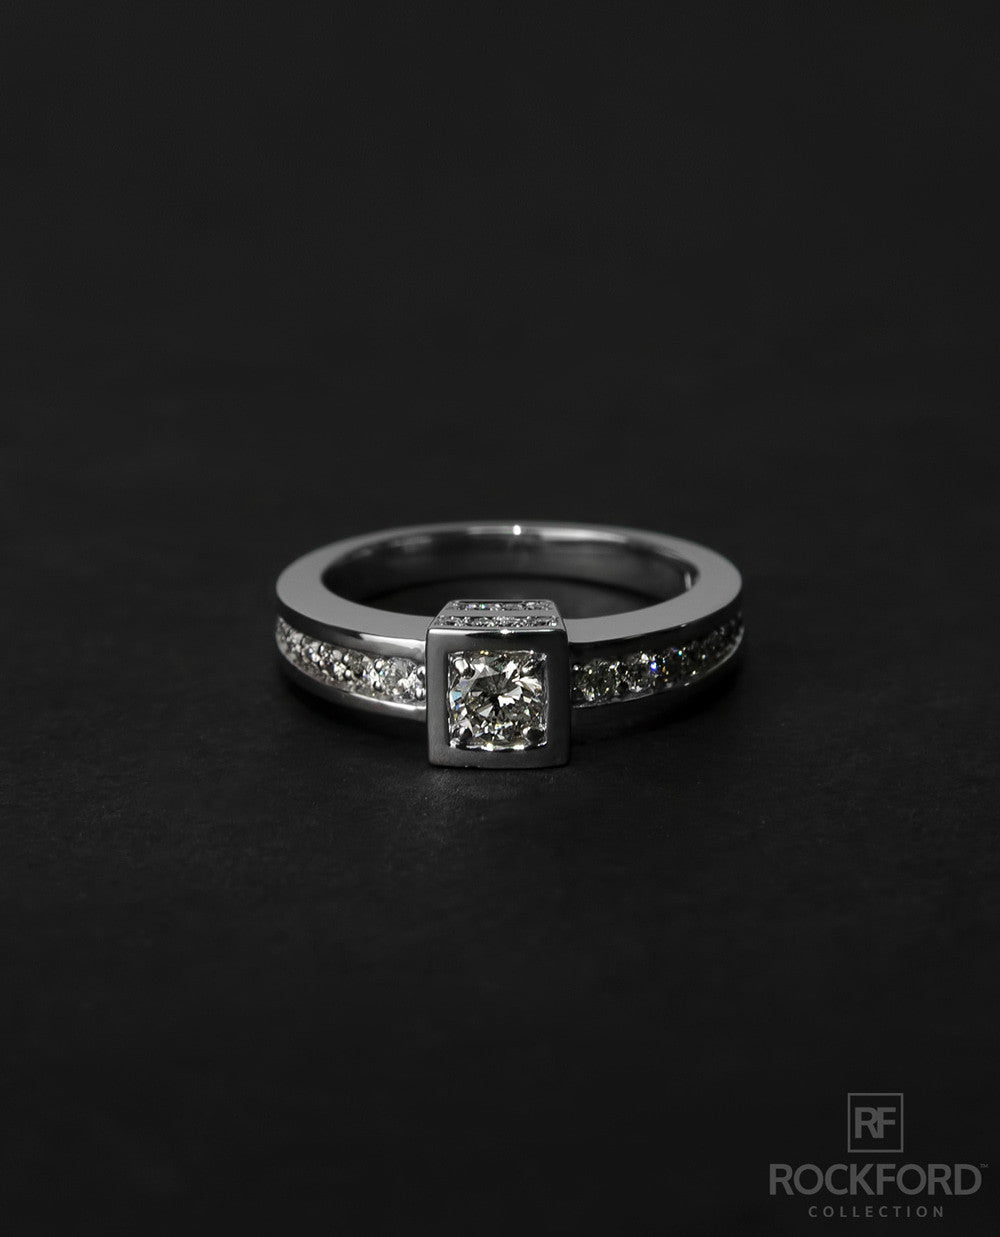 VULTURE Mens Gold Wedding Ring with 0.85 ct Diamonds